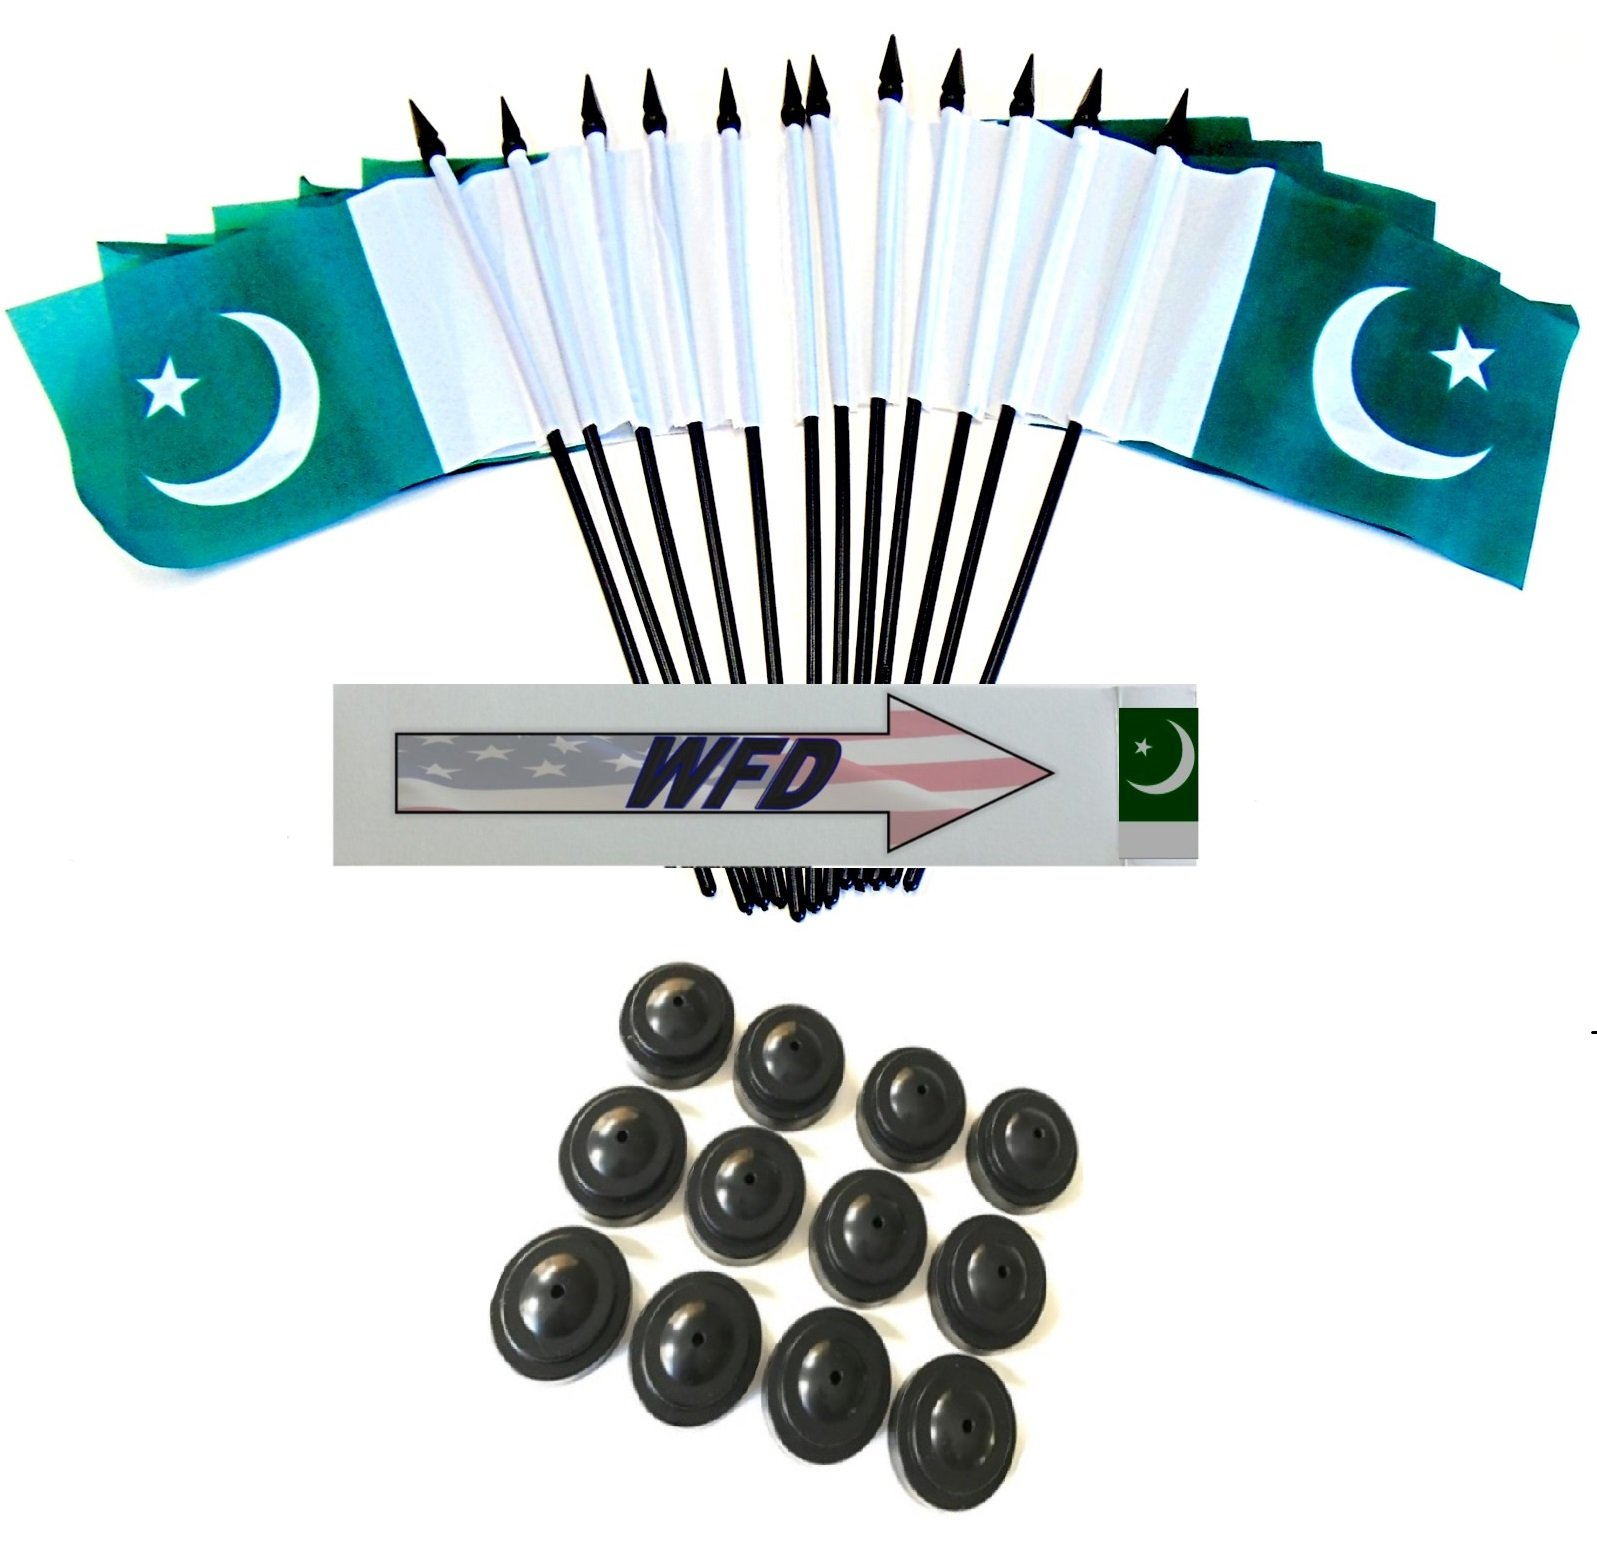 Pack of 12 4''x6'' Pakistan Polyester Miniature Office Desk & Little Table Flags, 1 Dozen 4''x 6'' Pakistani Small Mini Handheld Waving Stick Flags with 12 Flag Bases (Flags with Stands)